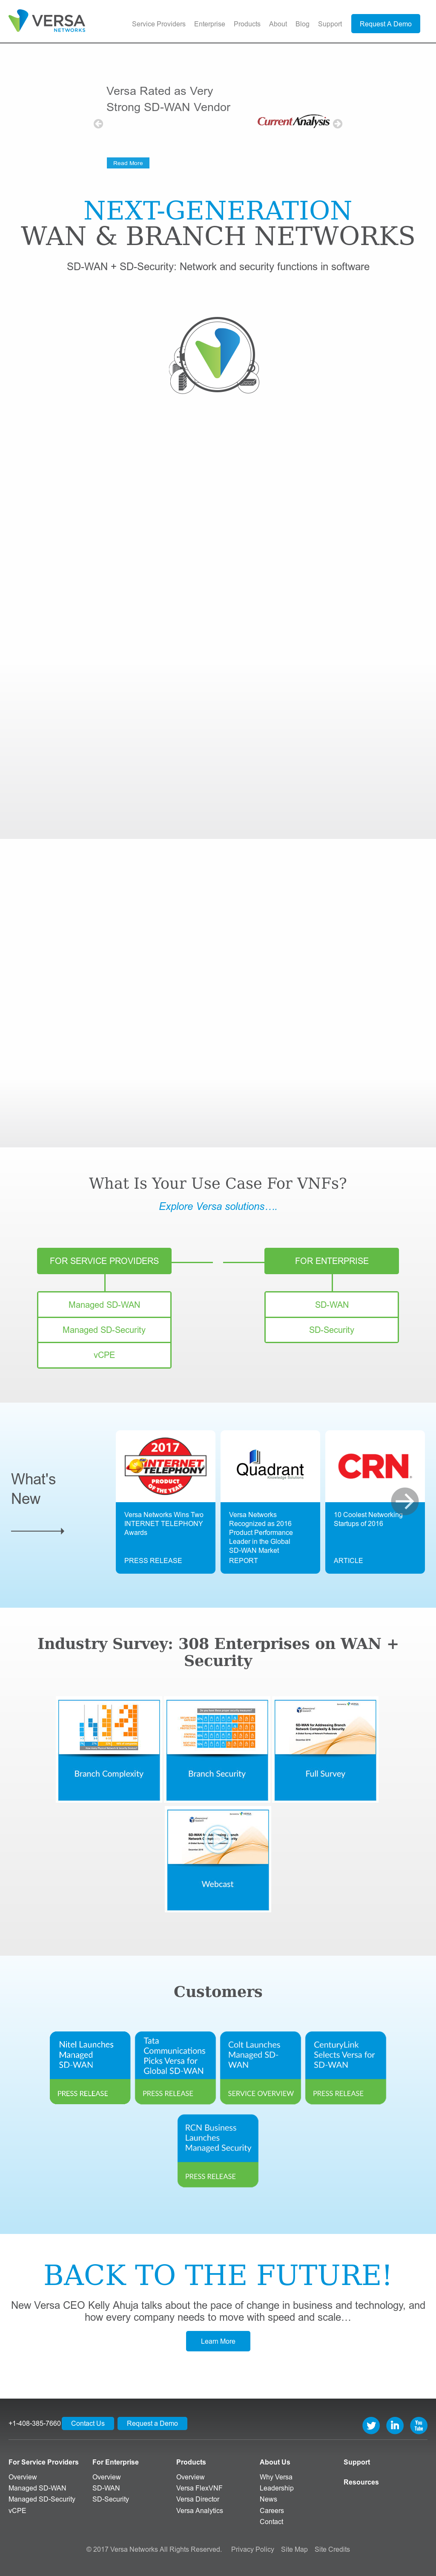 Versa Networks Competitors, Revenue and Employees - Owler